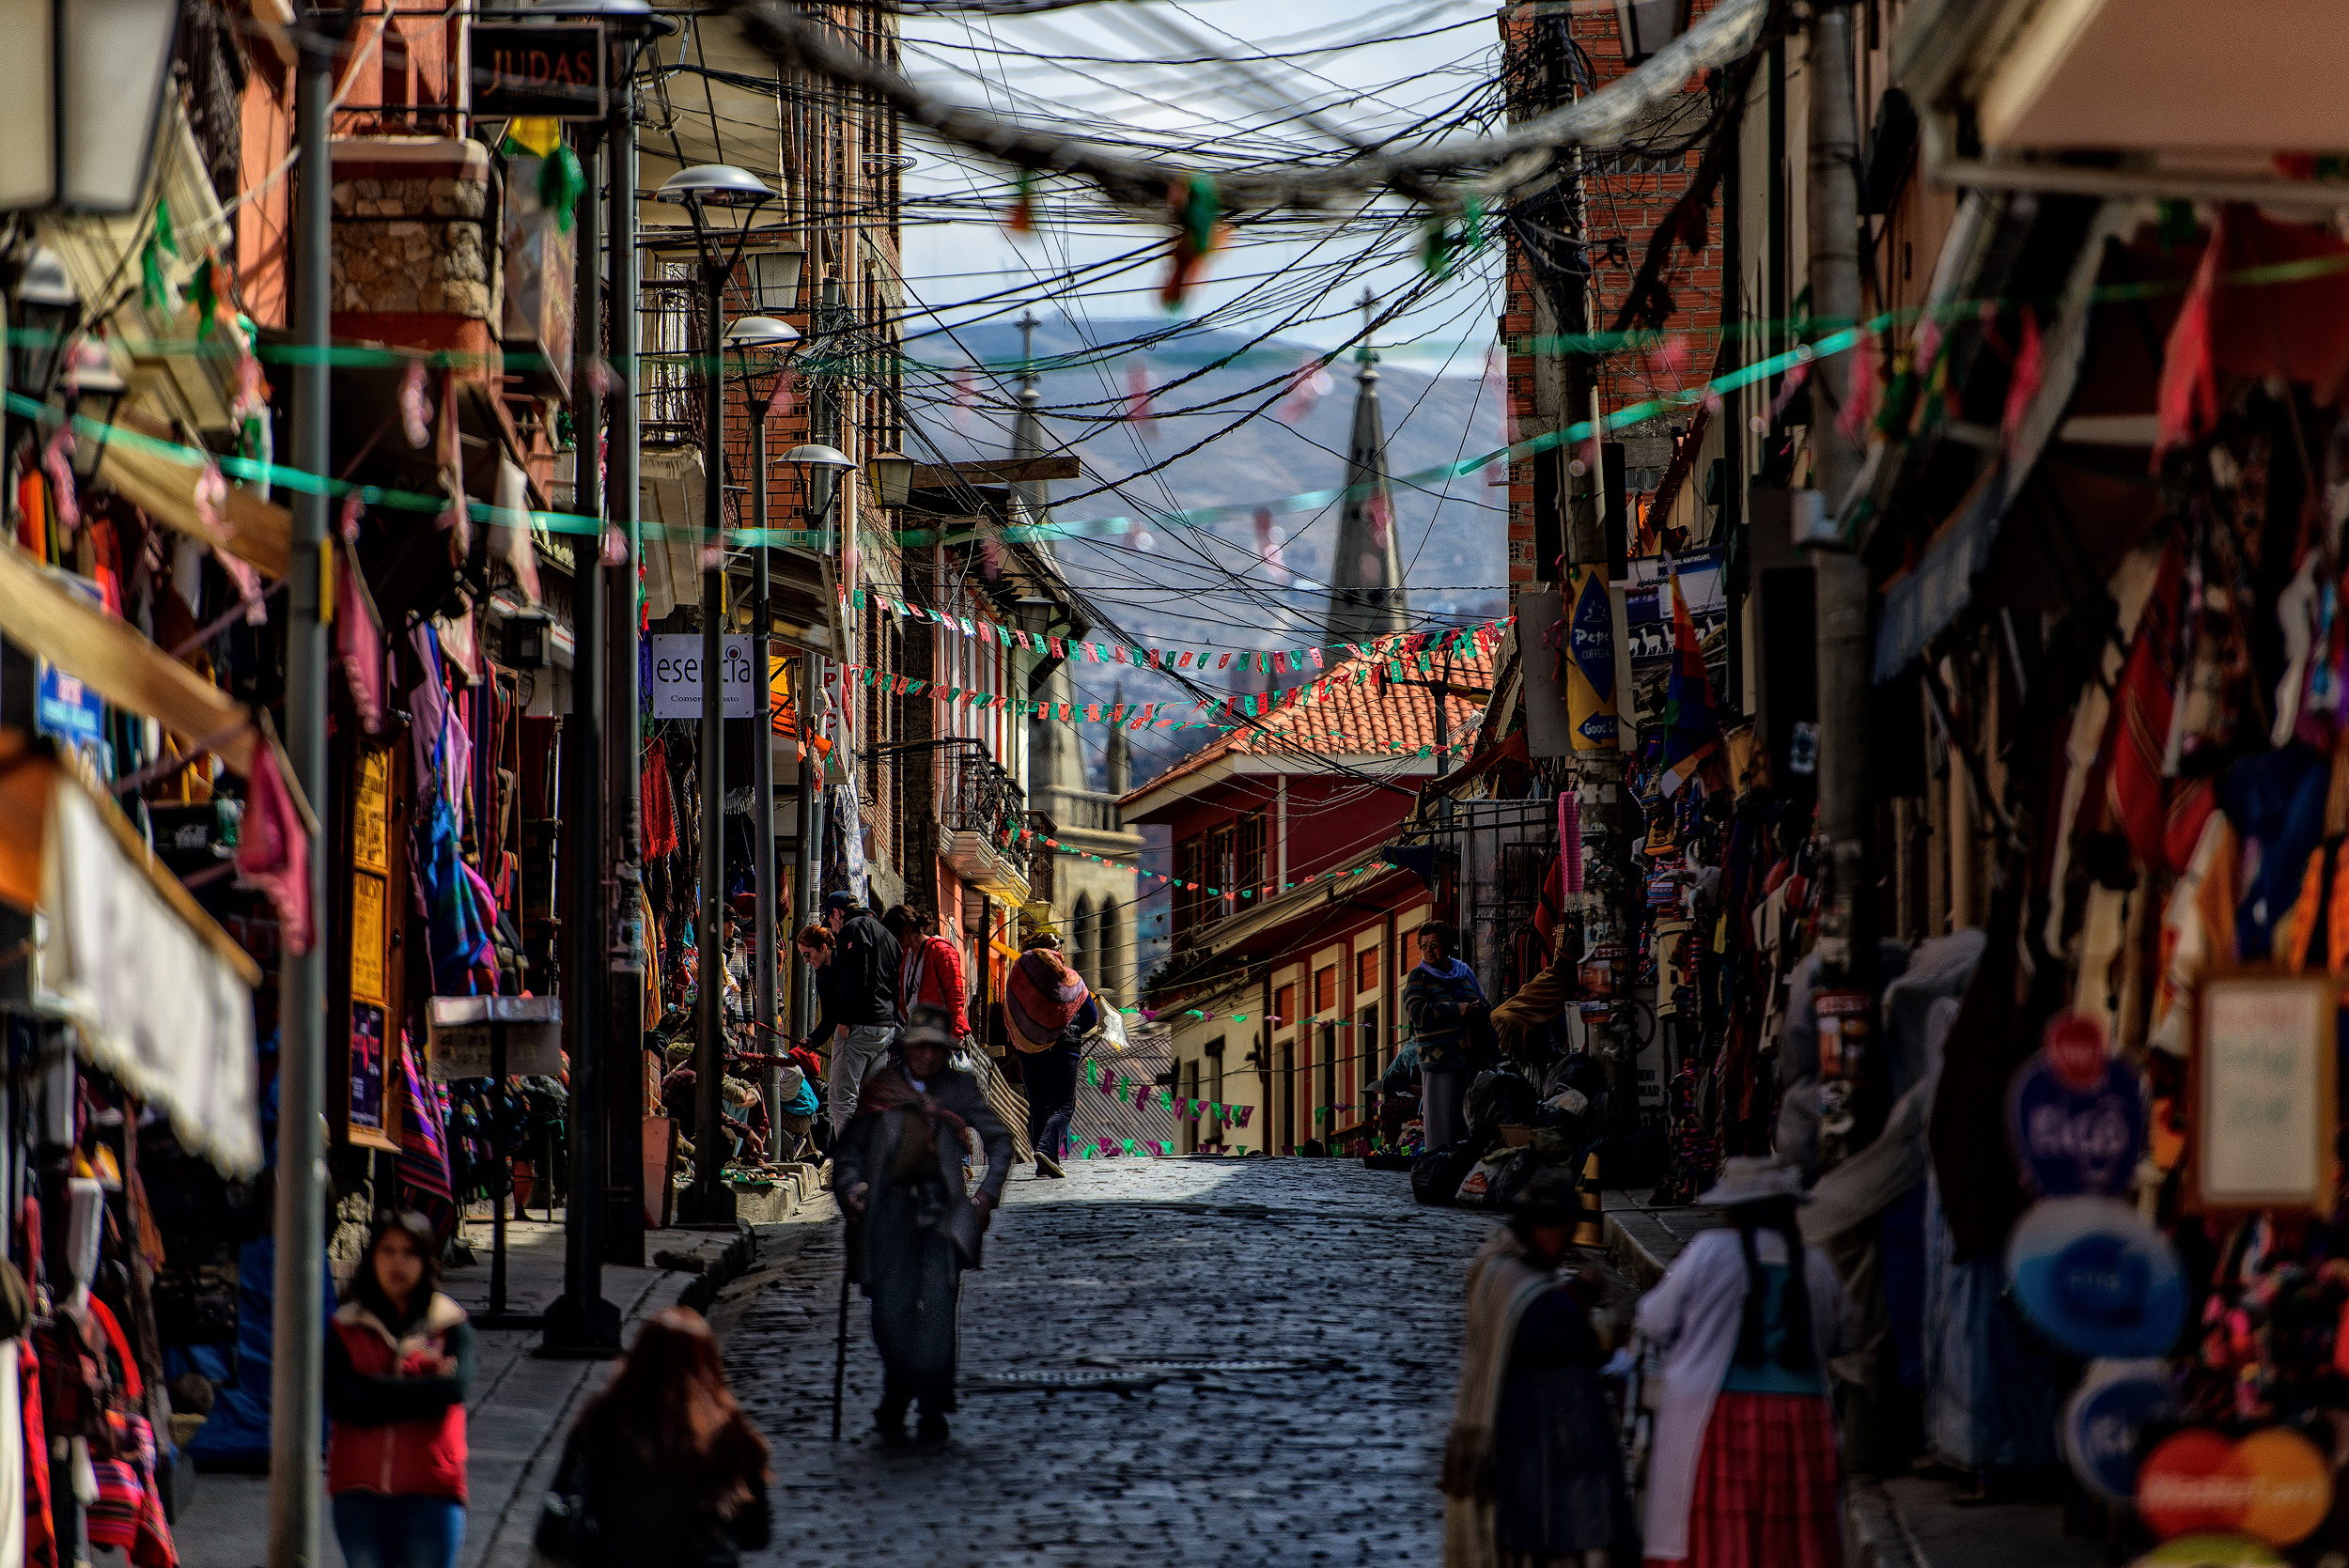 La Paz   Downtown La Paz is a warren of tiny streets and markets with the whole city surrounded by the towering peaks of the Cordilliiera Real